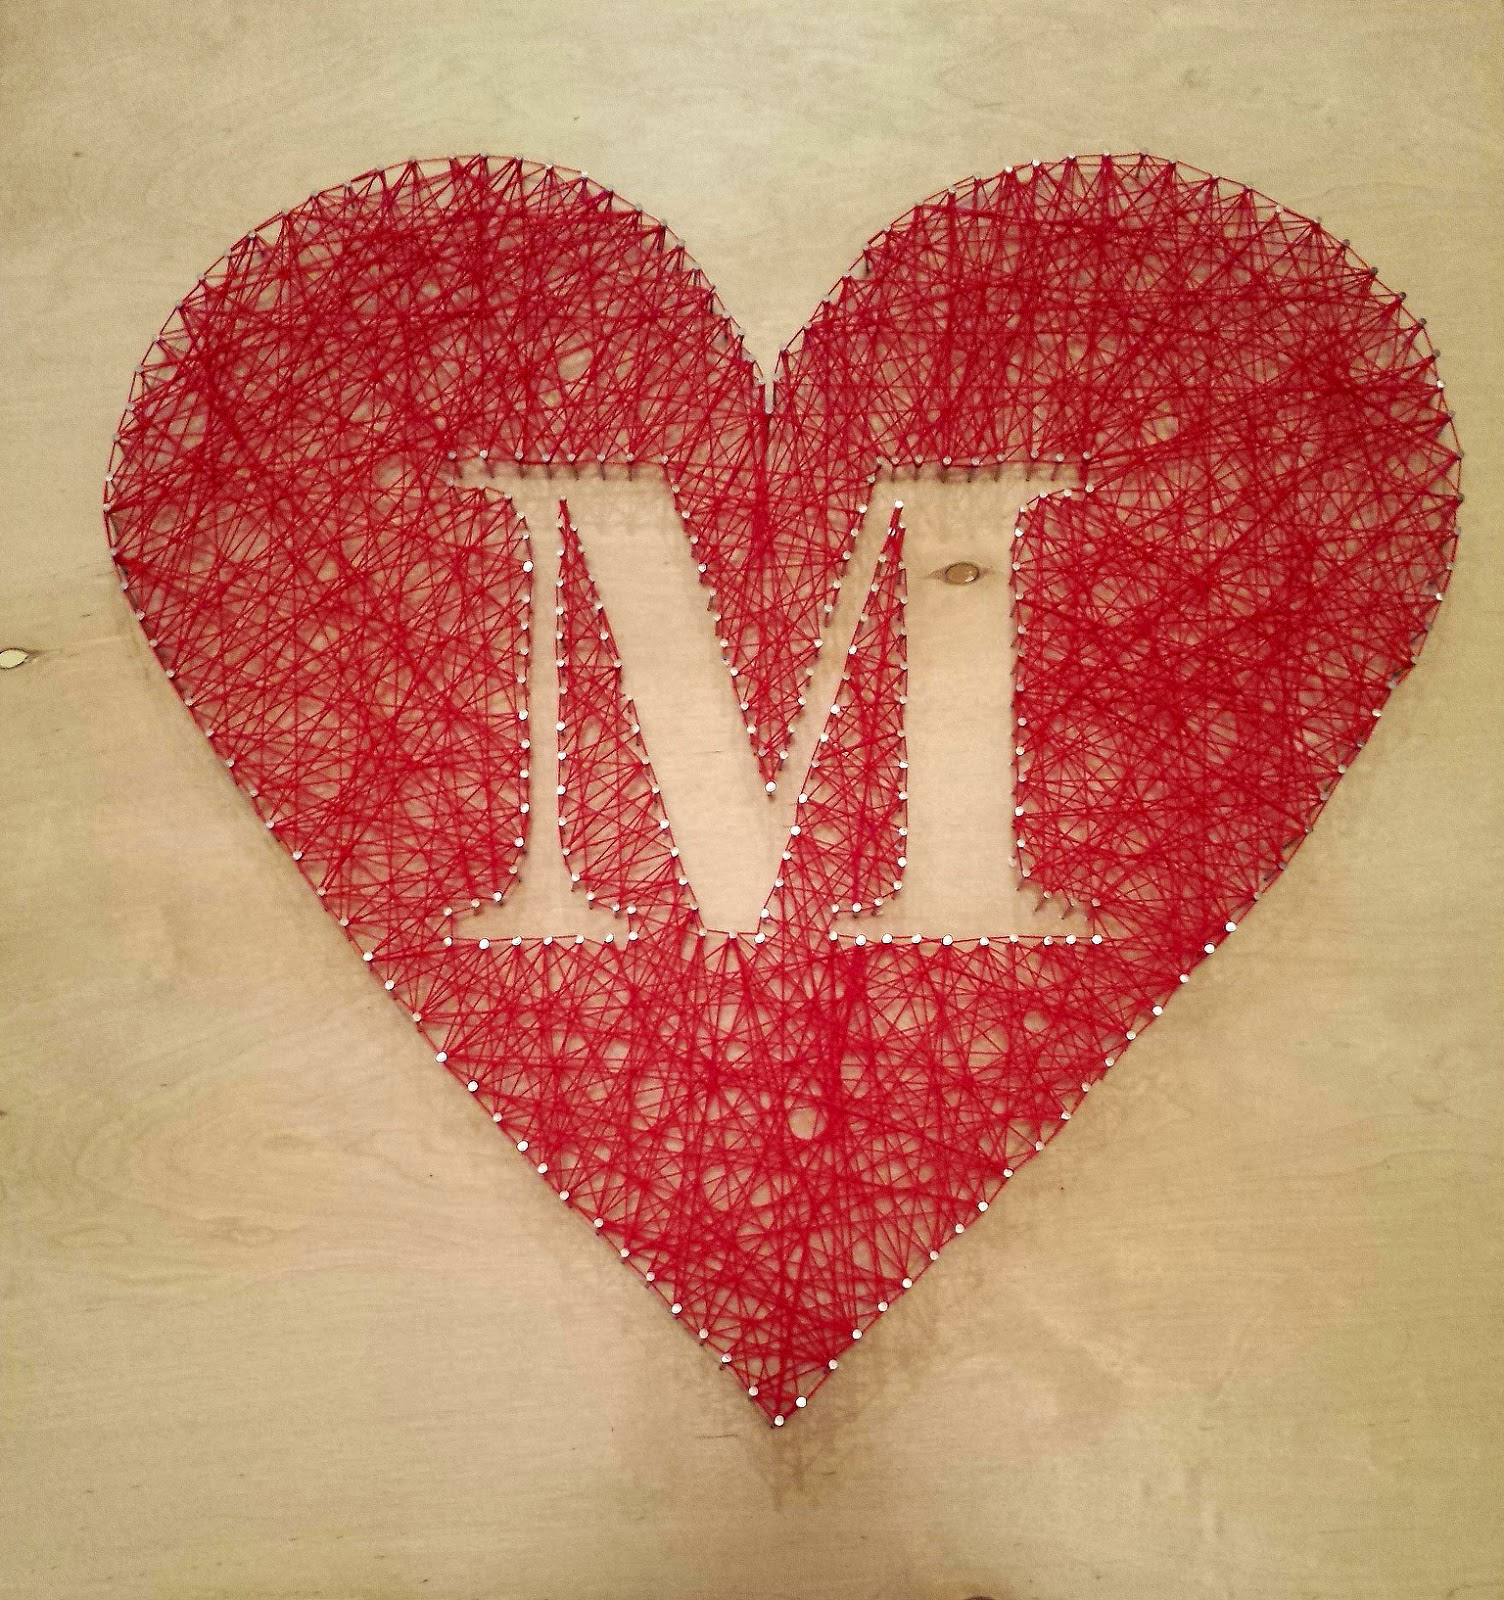 The adventures of mrs mayfield diy string art heart tutorial string art heart tutorial by mrs mayfield baditri Image collections